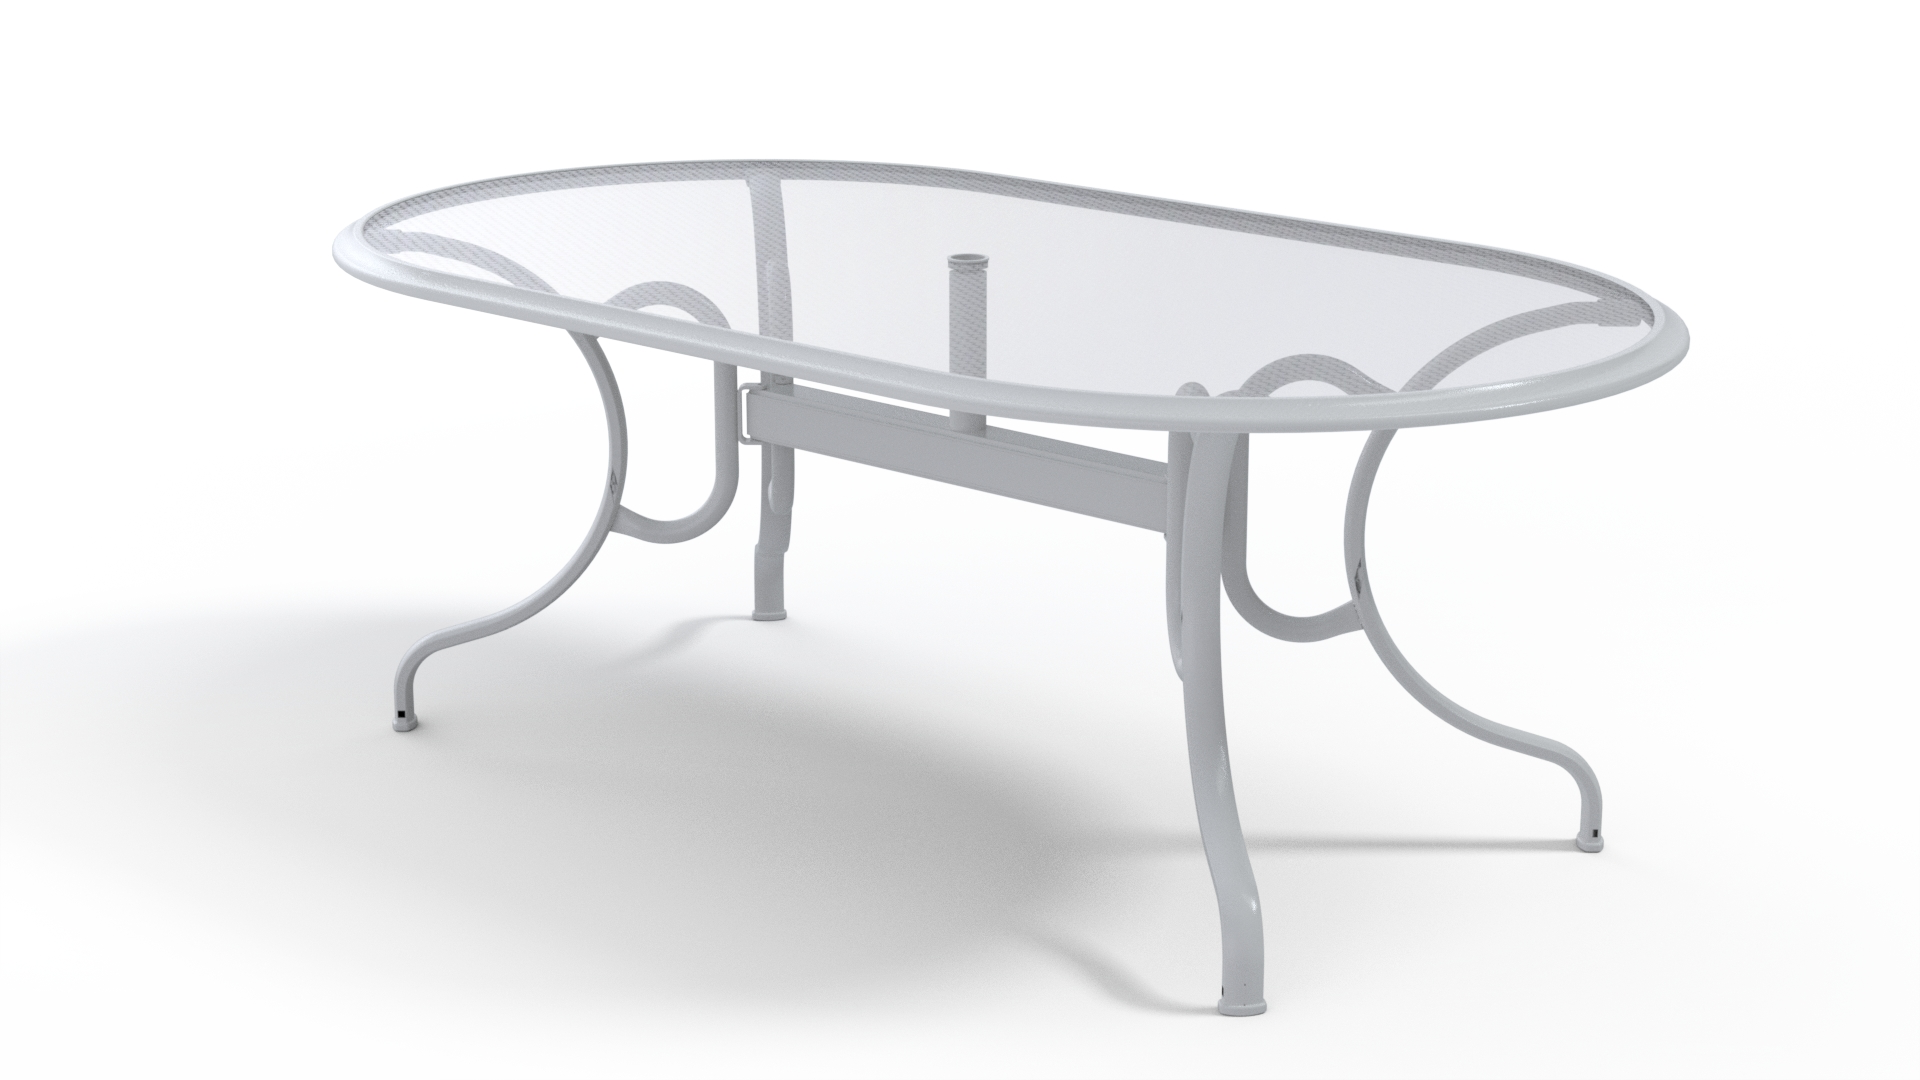 43″ x 75″ Oval Glass Top Dining Table